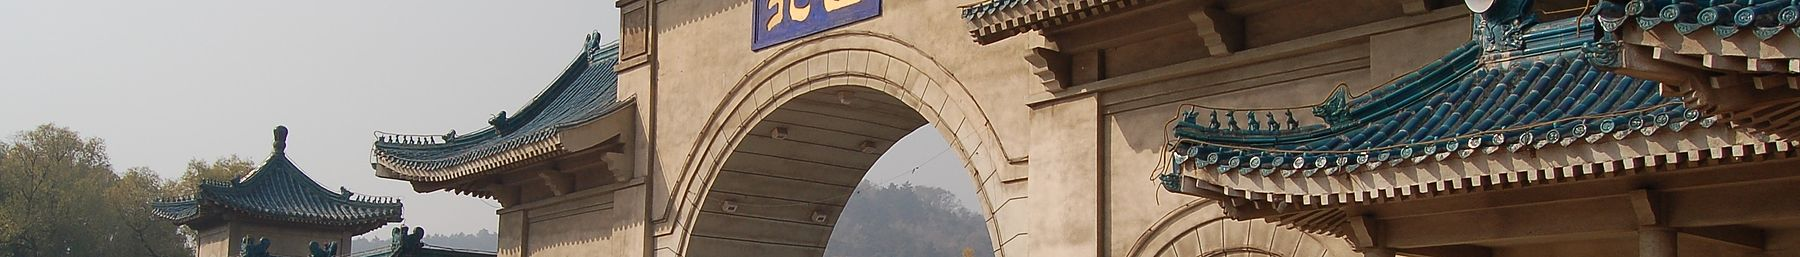 WV banner Jilin City Gate.jpg